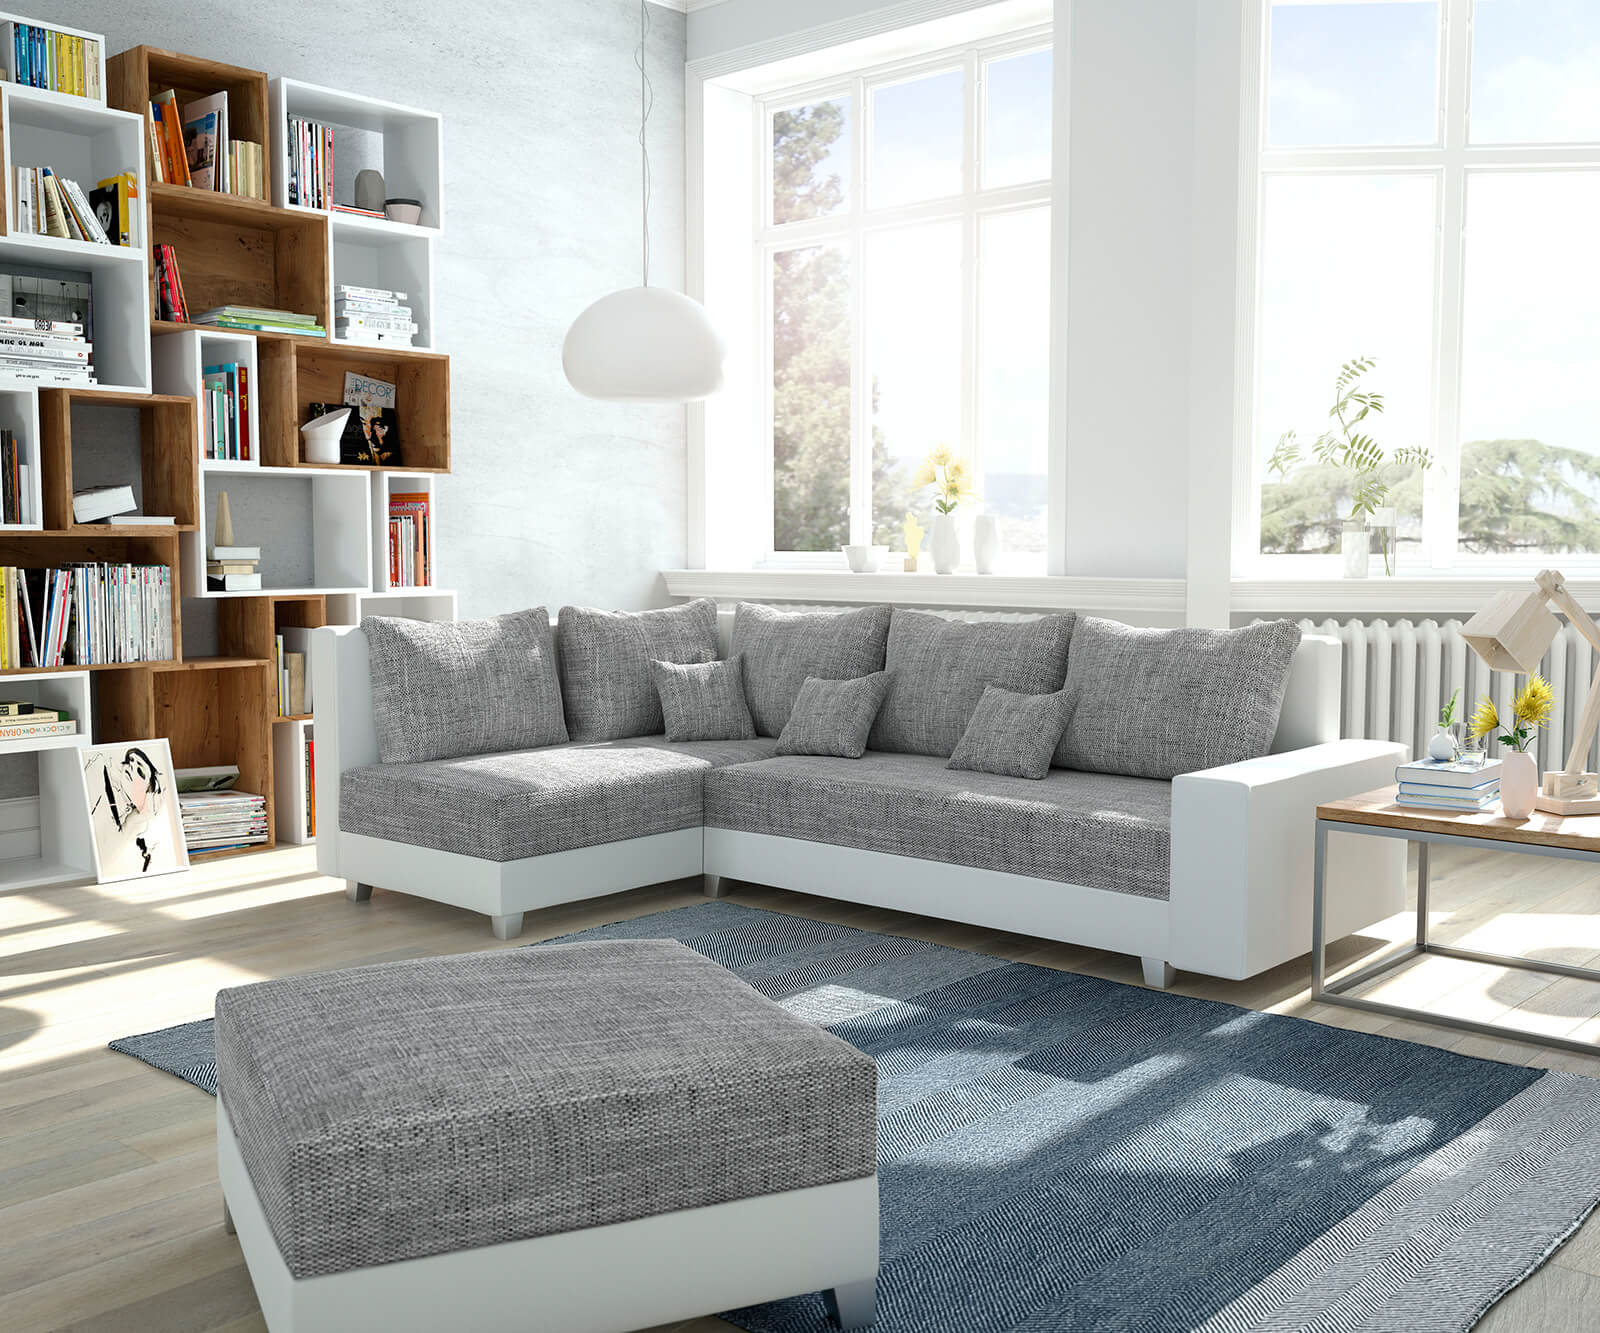 ecksofa panama hellgrau weiss ottomane links mit hocker modulsofa m bel sofas ecksofas. Black Bedroom Furniture Sets. Home Design Ideas